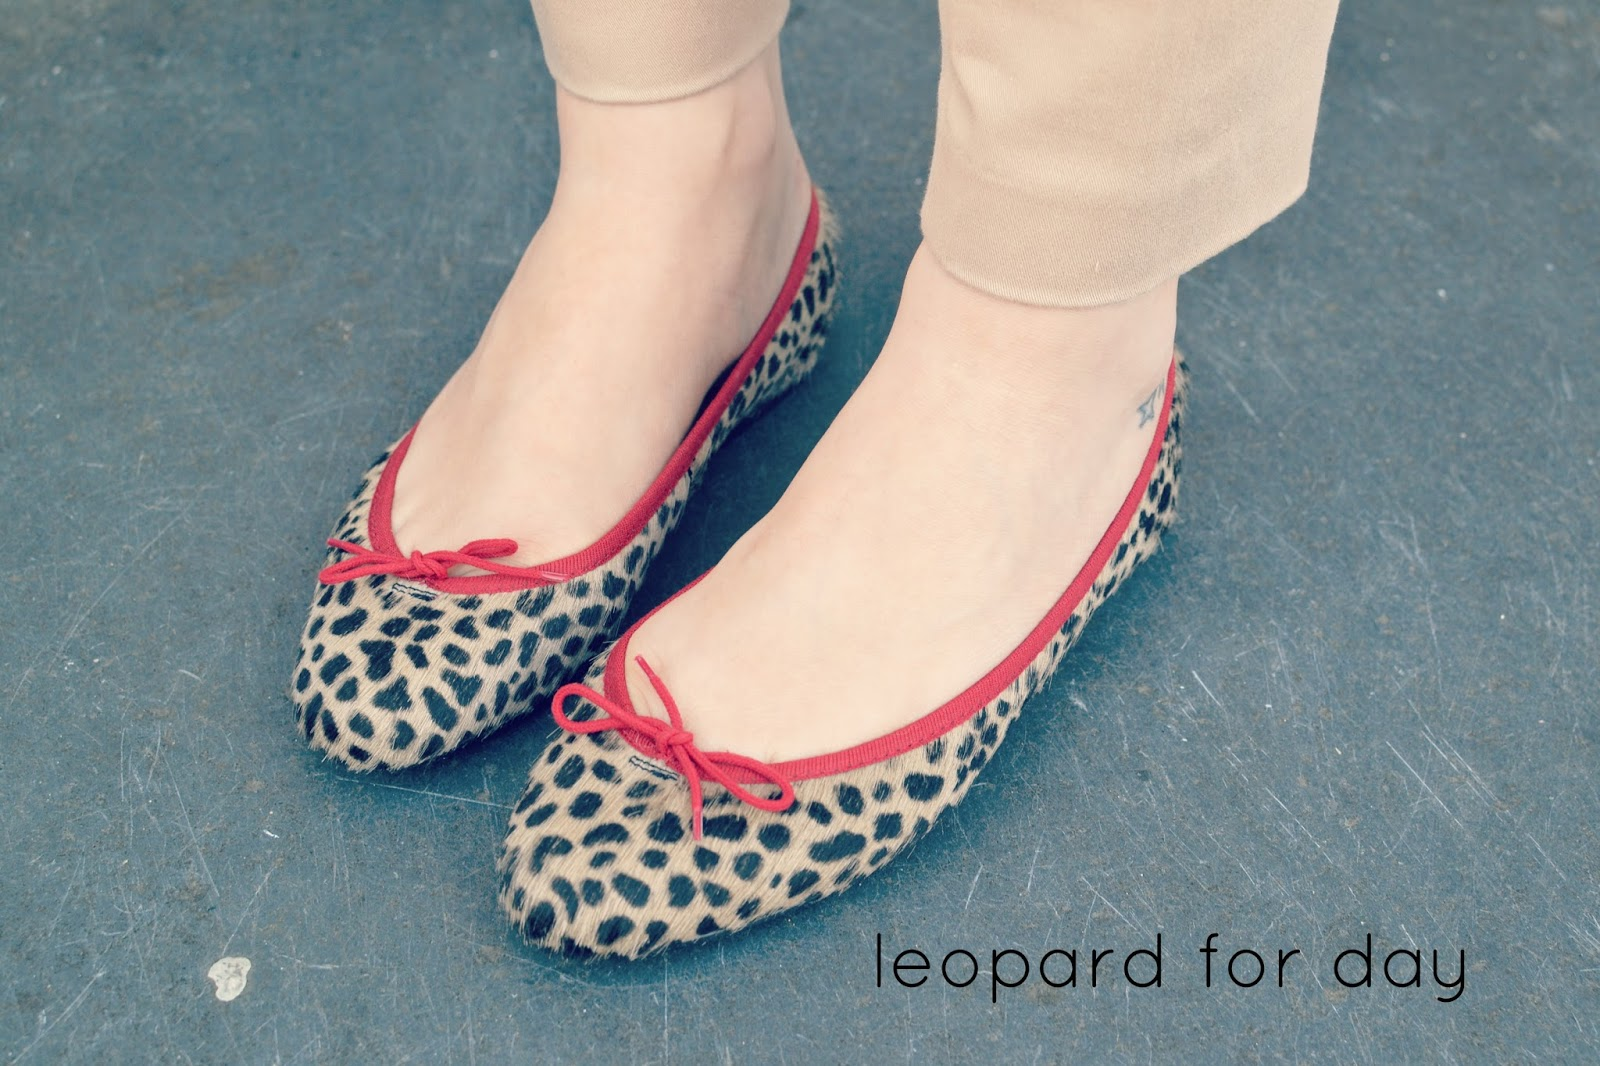 French Sole Leopard Print ballerinas shoes